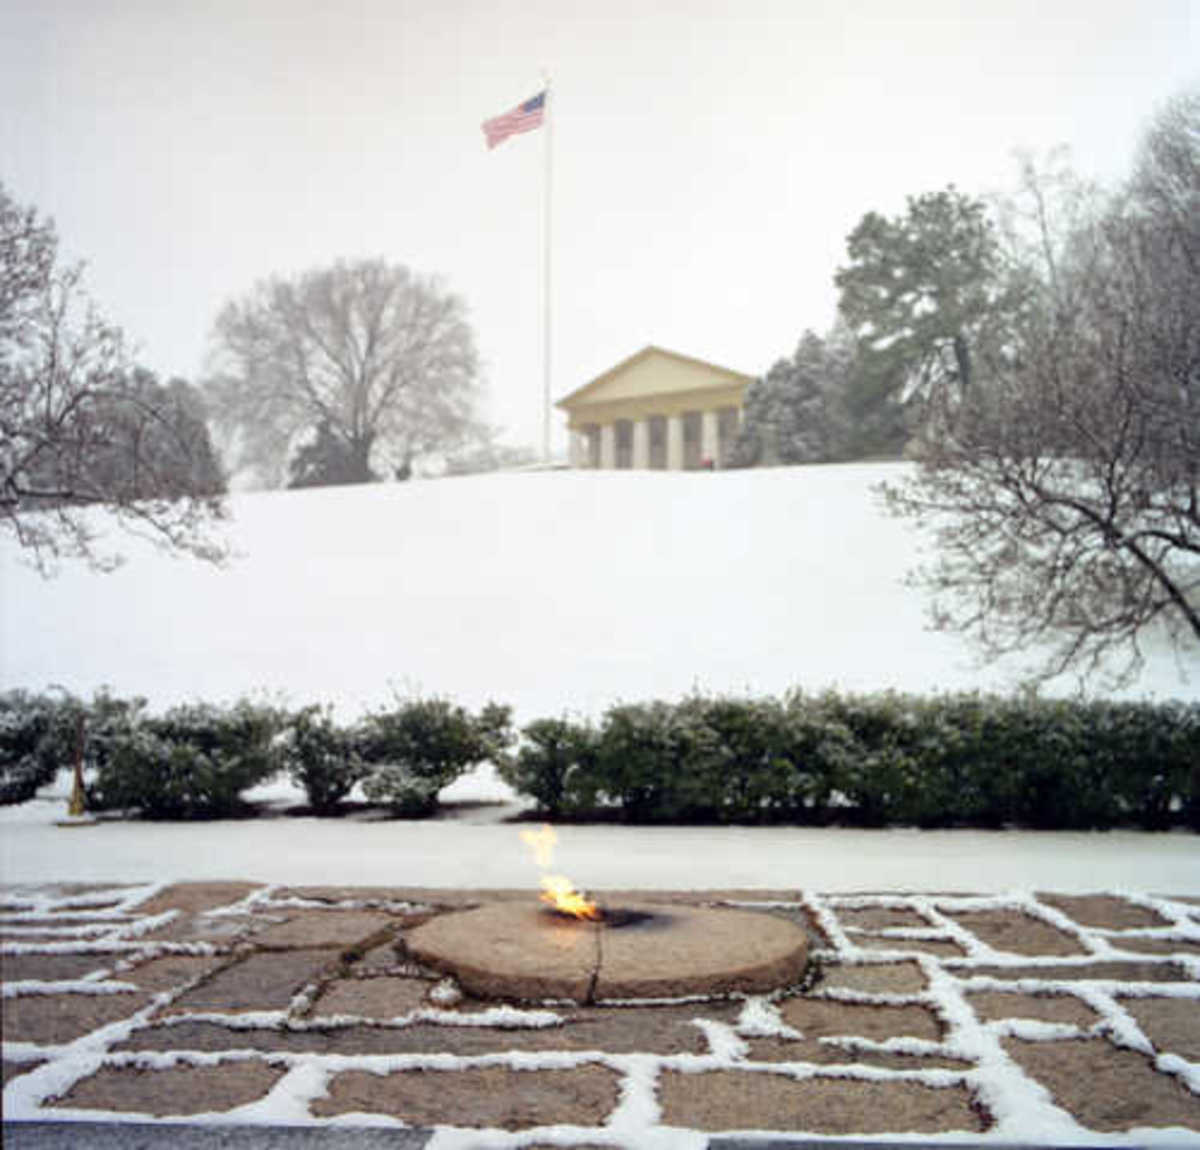 President Kennedy Gravesite and Eternal Flame with Robert E. Lee Mansion in Background